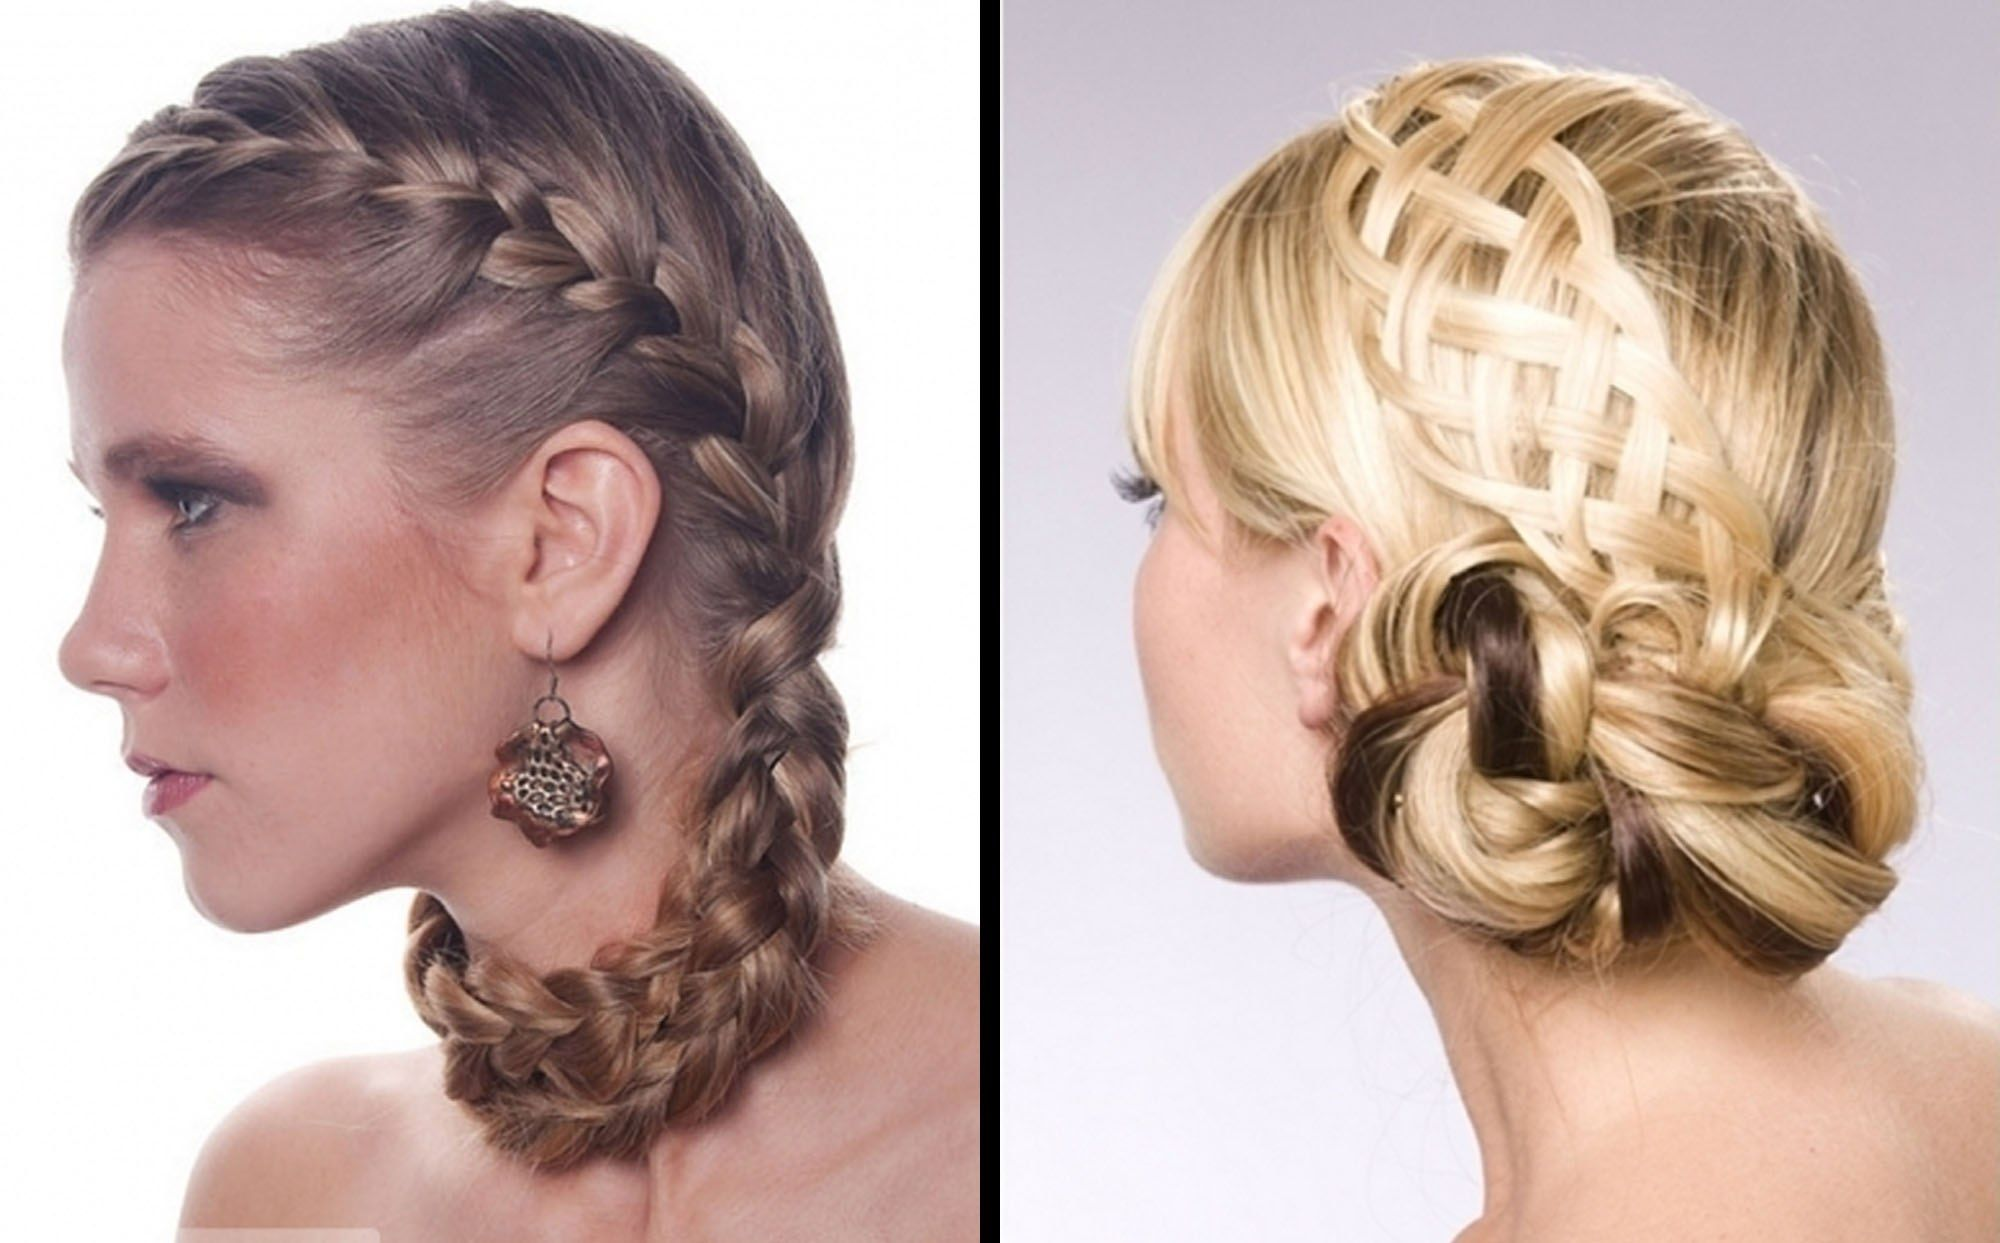 Short prom hair on pinterest side curly hairstyles prom hair